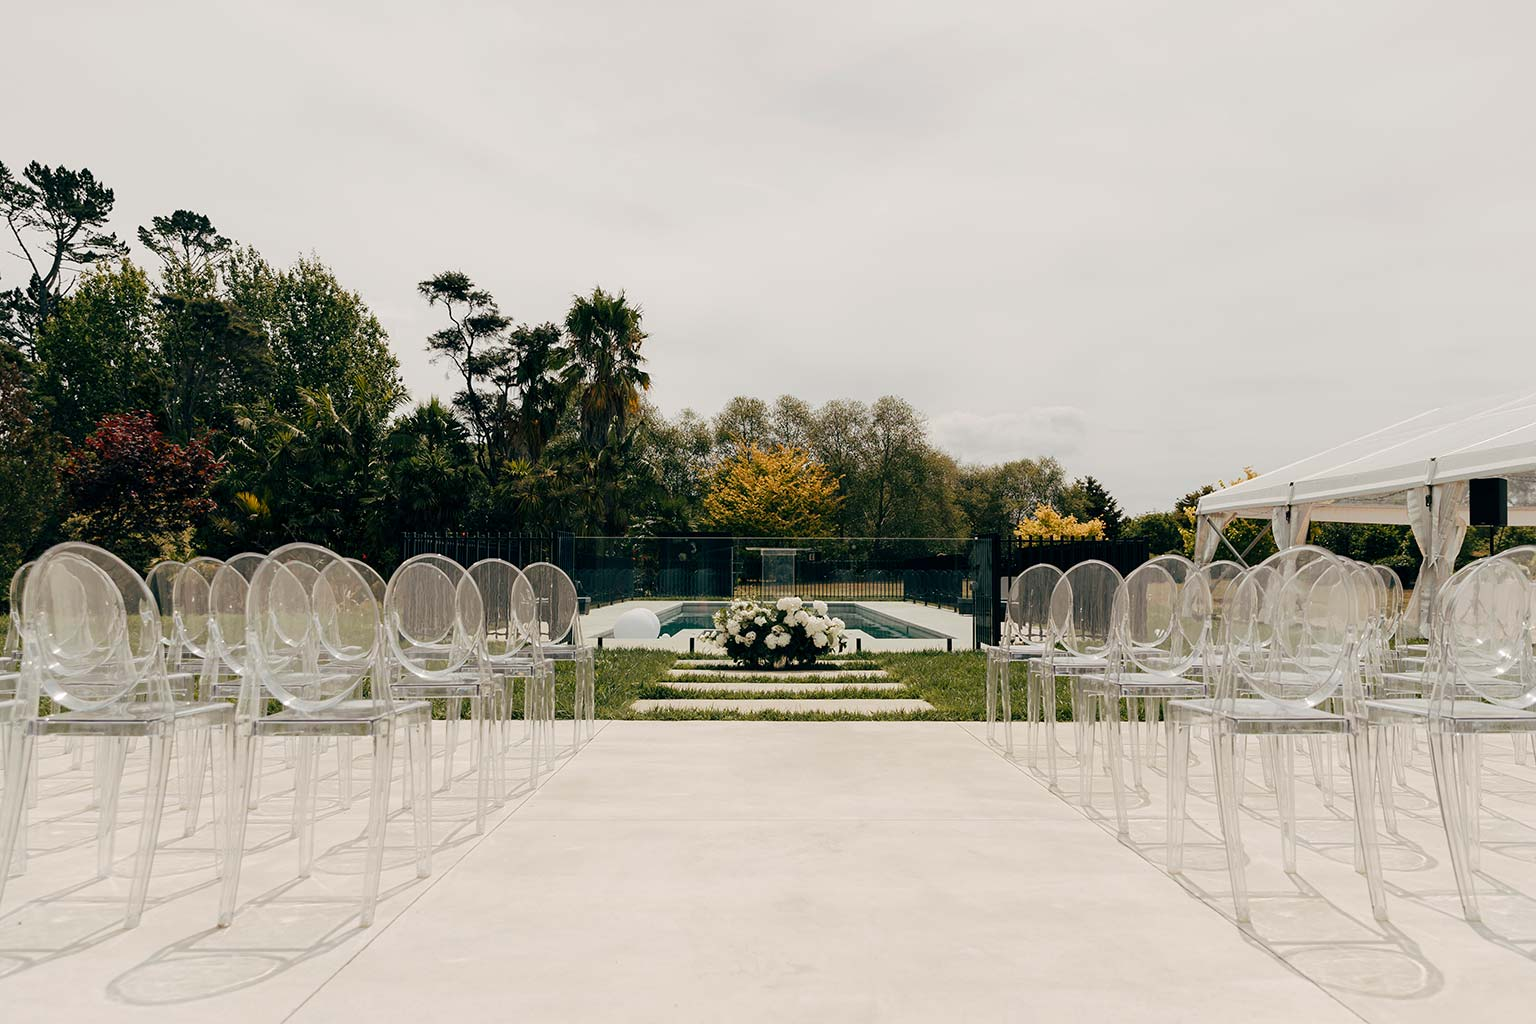 Vinka Design Bridal Wear features Real Wedding Matt and Emilia - outdoor ceremony with rows of empty chairs before guests arrive